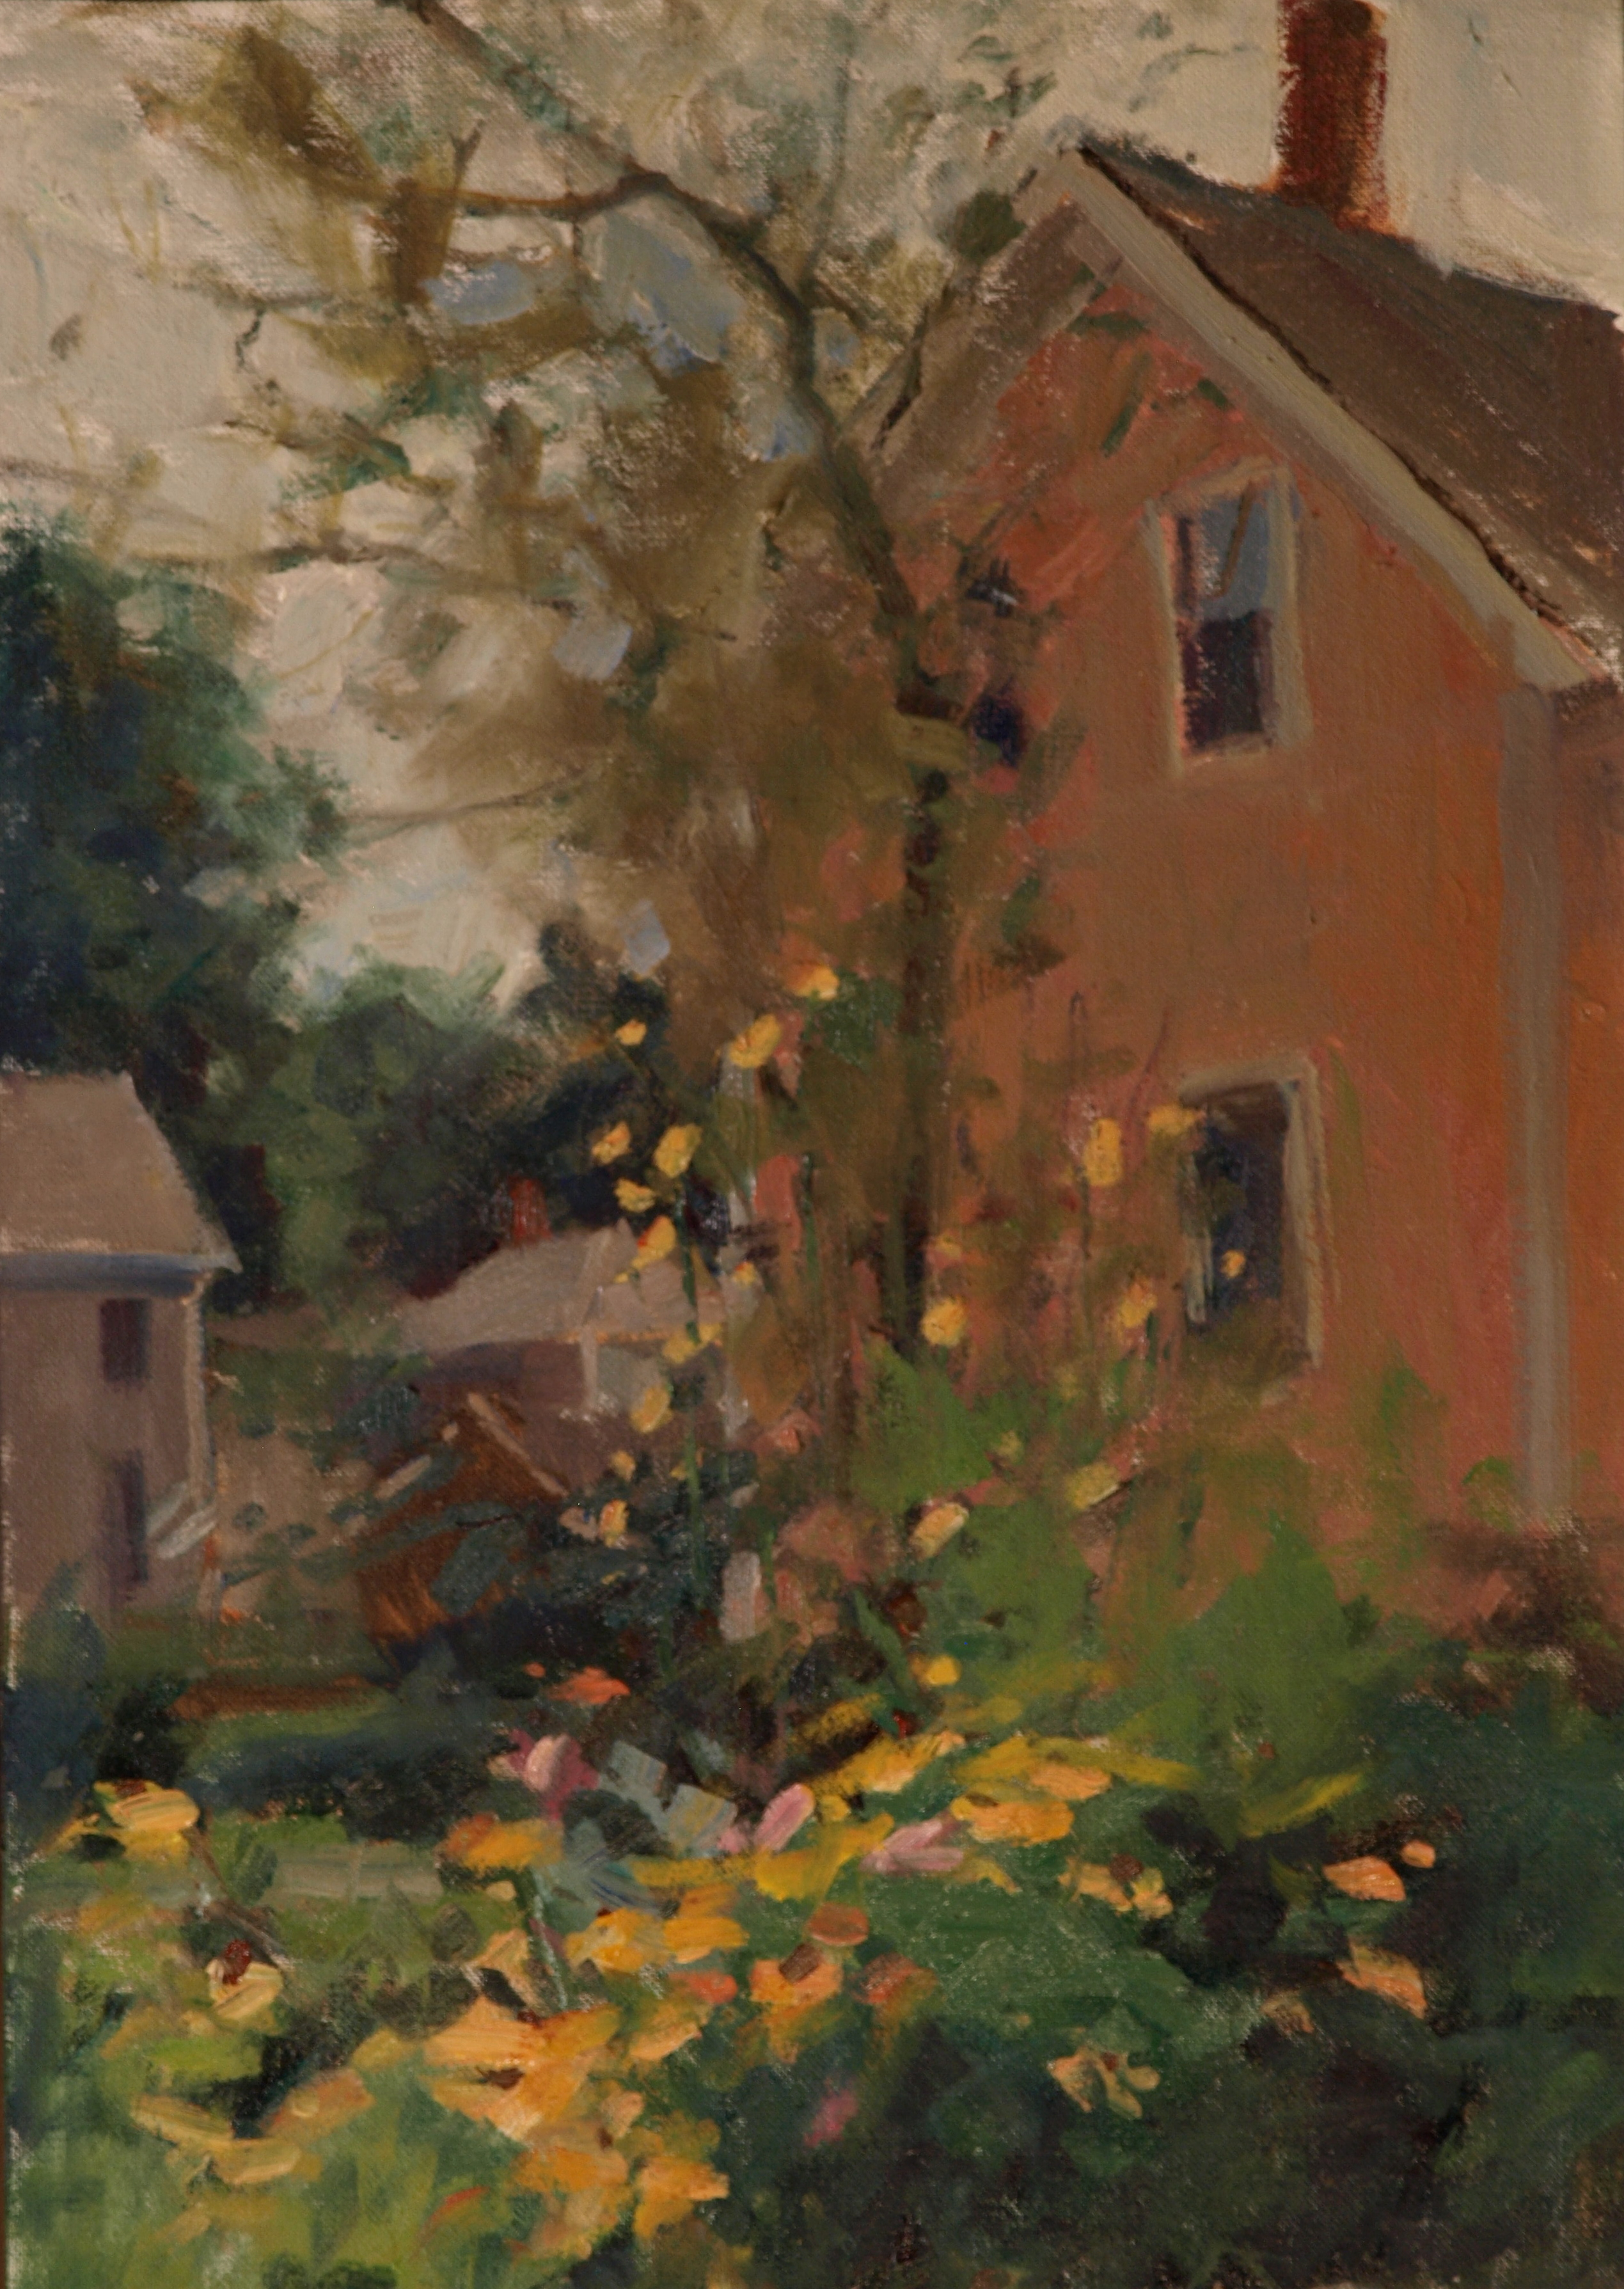 Houses - Amesbury, Oil on Canvas on Panel, 18 x 12 Inches, by Susan Grisell, $325